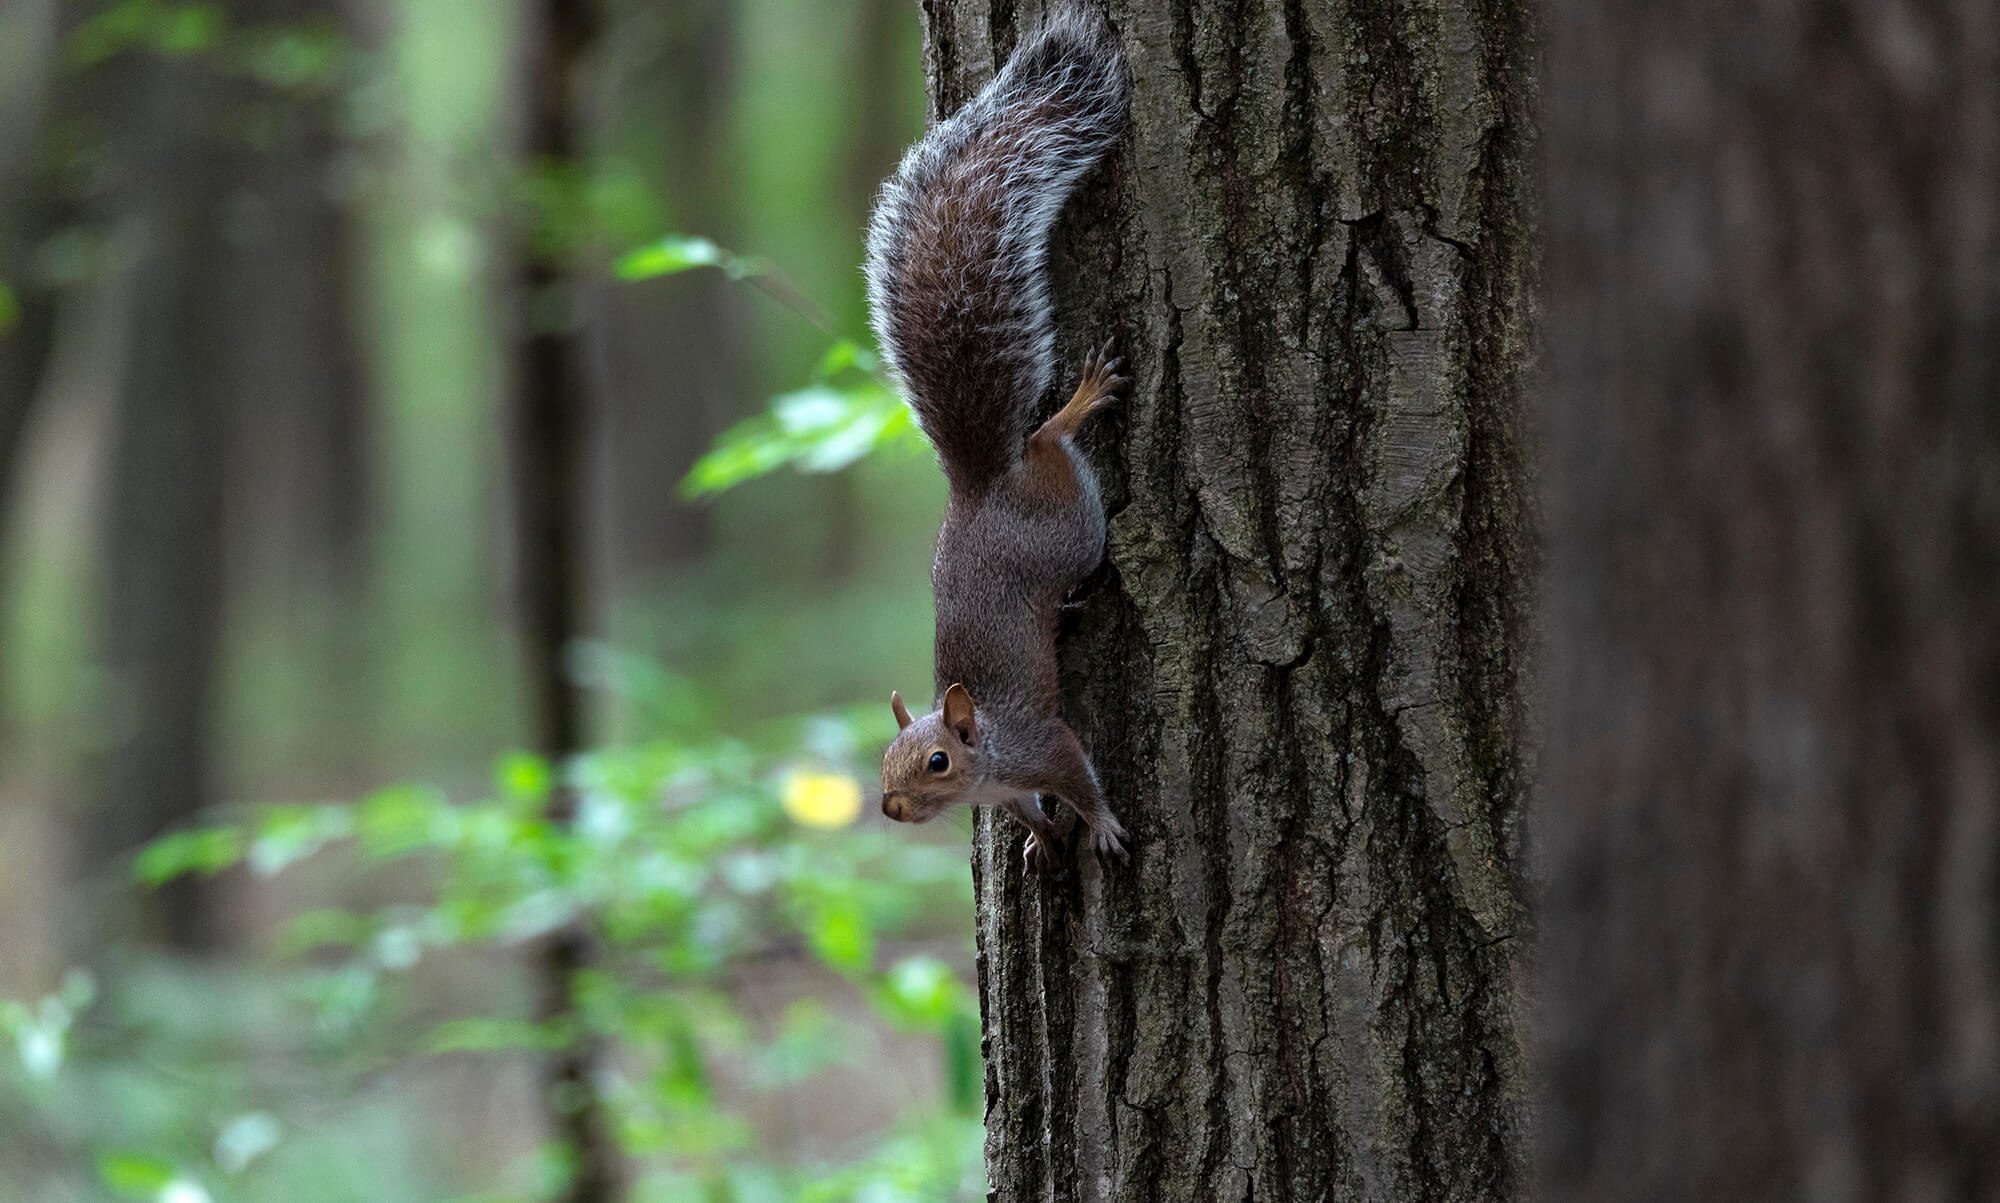 Squirrel vertically facing down